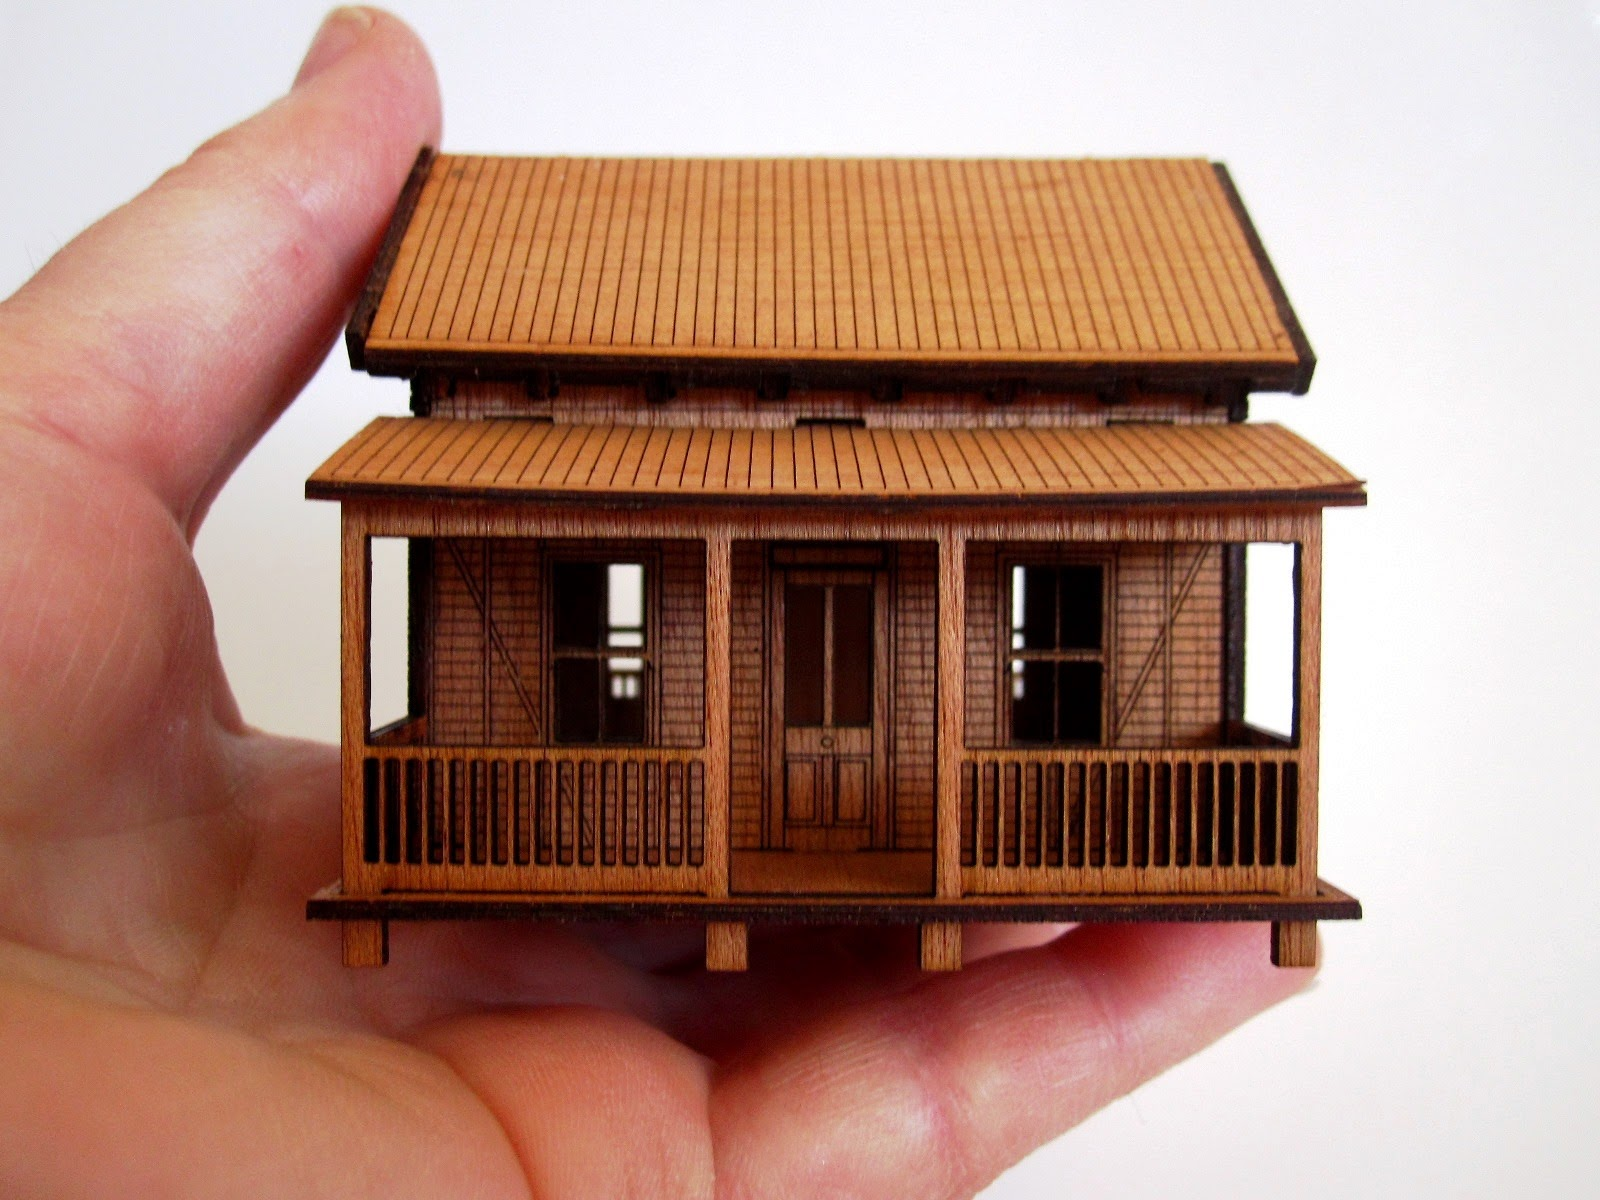 Wooden laser-cut miniature wooden cottage, held by a hand.